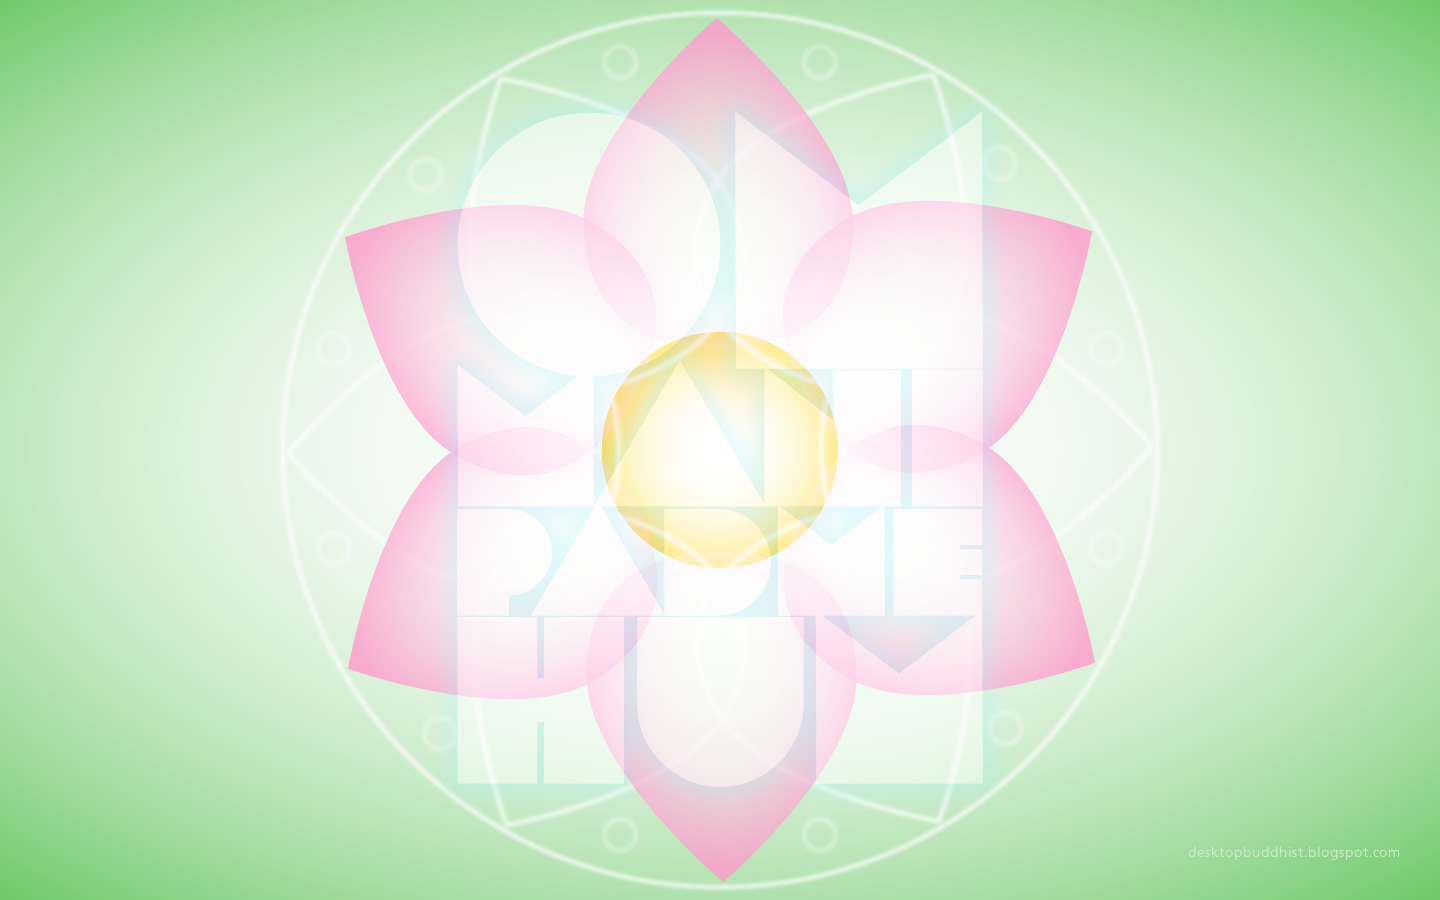 Desktop Buddhist Lotus and Guanyin Mantra   Buddhist Wallpaper 1440x900